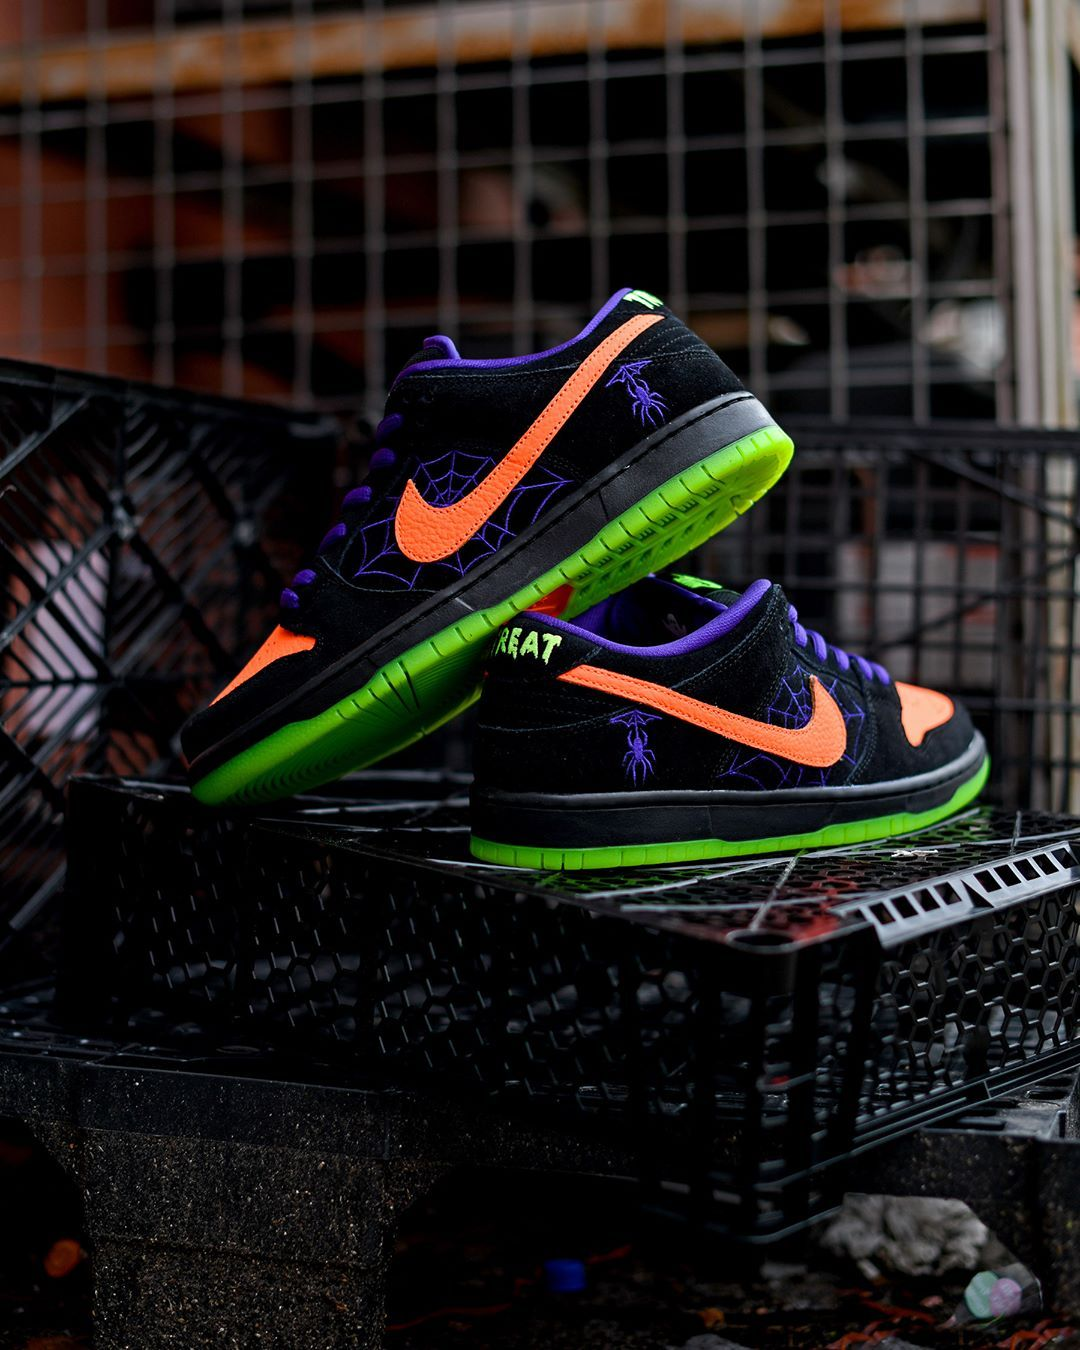 Nike Sb Dunk Low Halloween Night Of Mischief Launching Online October 31th Lancement Le 31 Octobre En Ligne Price 95 Nike Sb Dunks Nike Sb Dunk Low